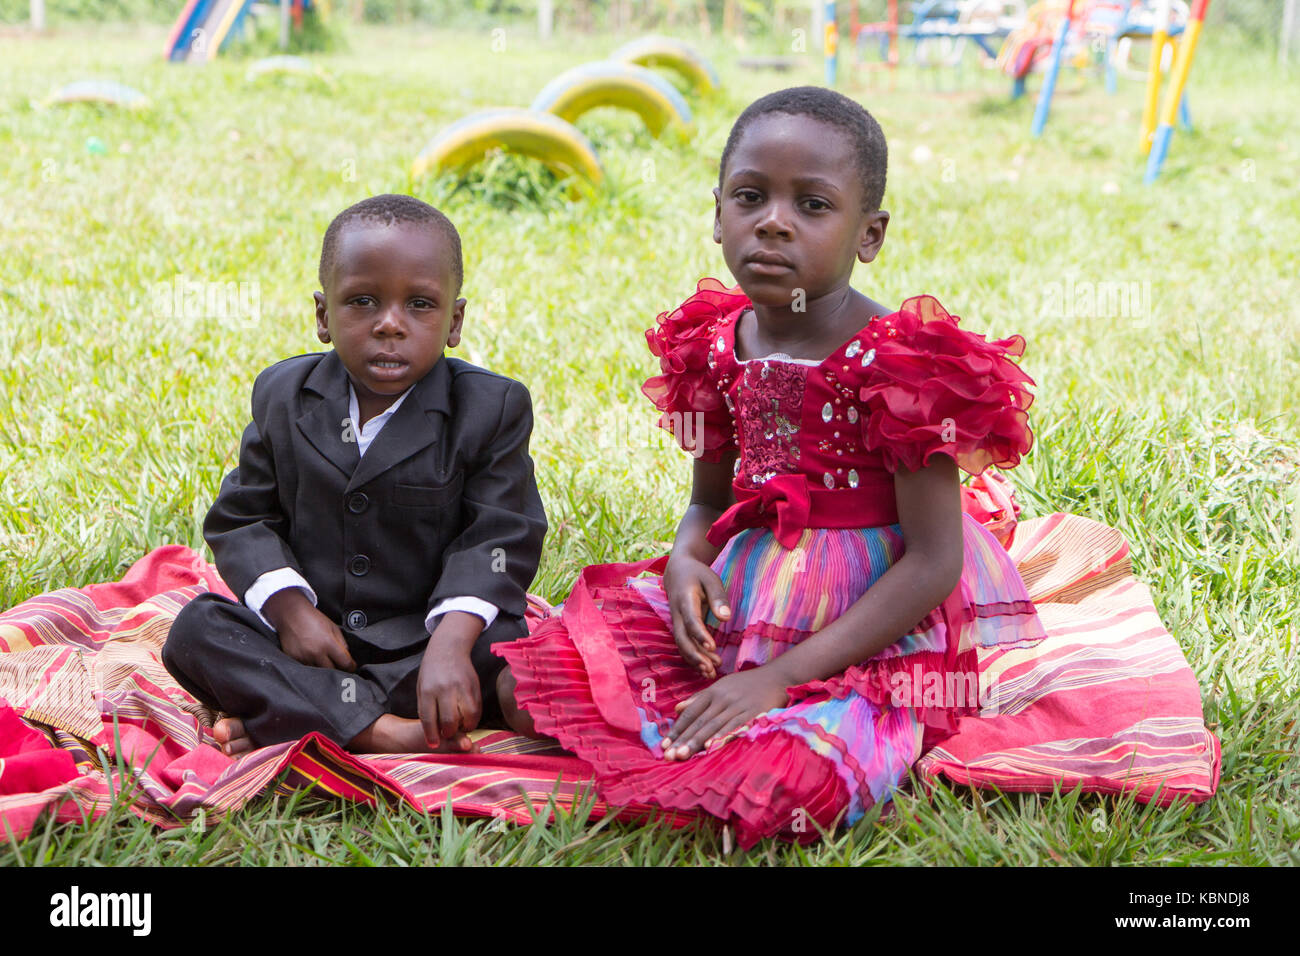 African boy and girl sitting together on a blanket in the grass. Both are dressed formally. - Stock Image